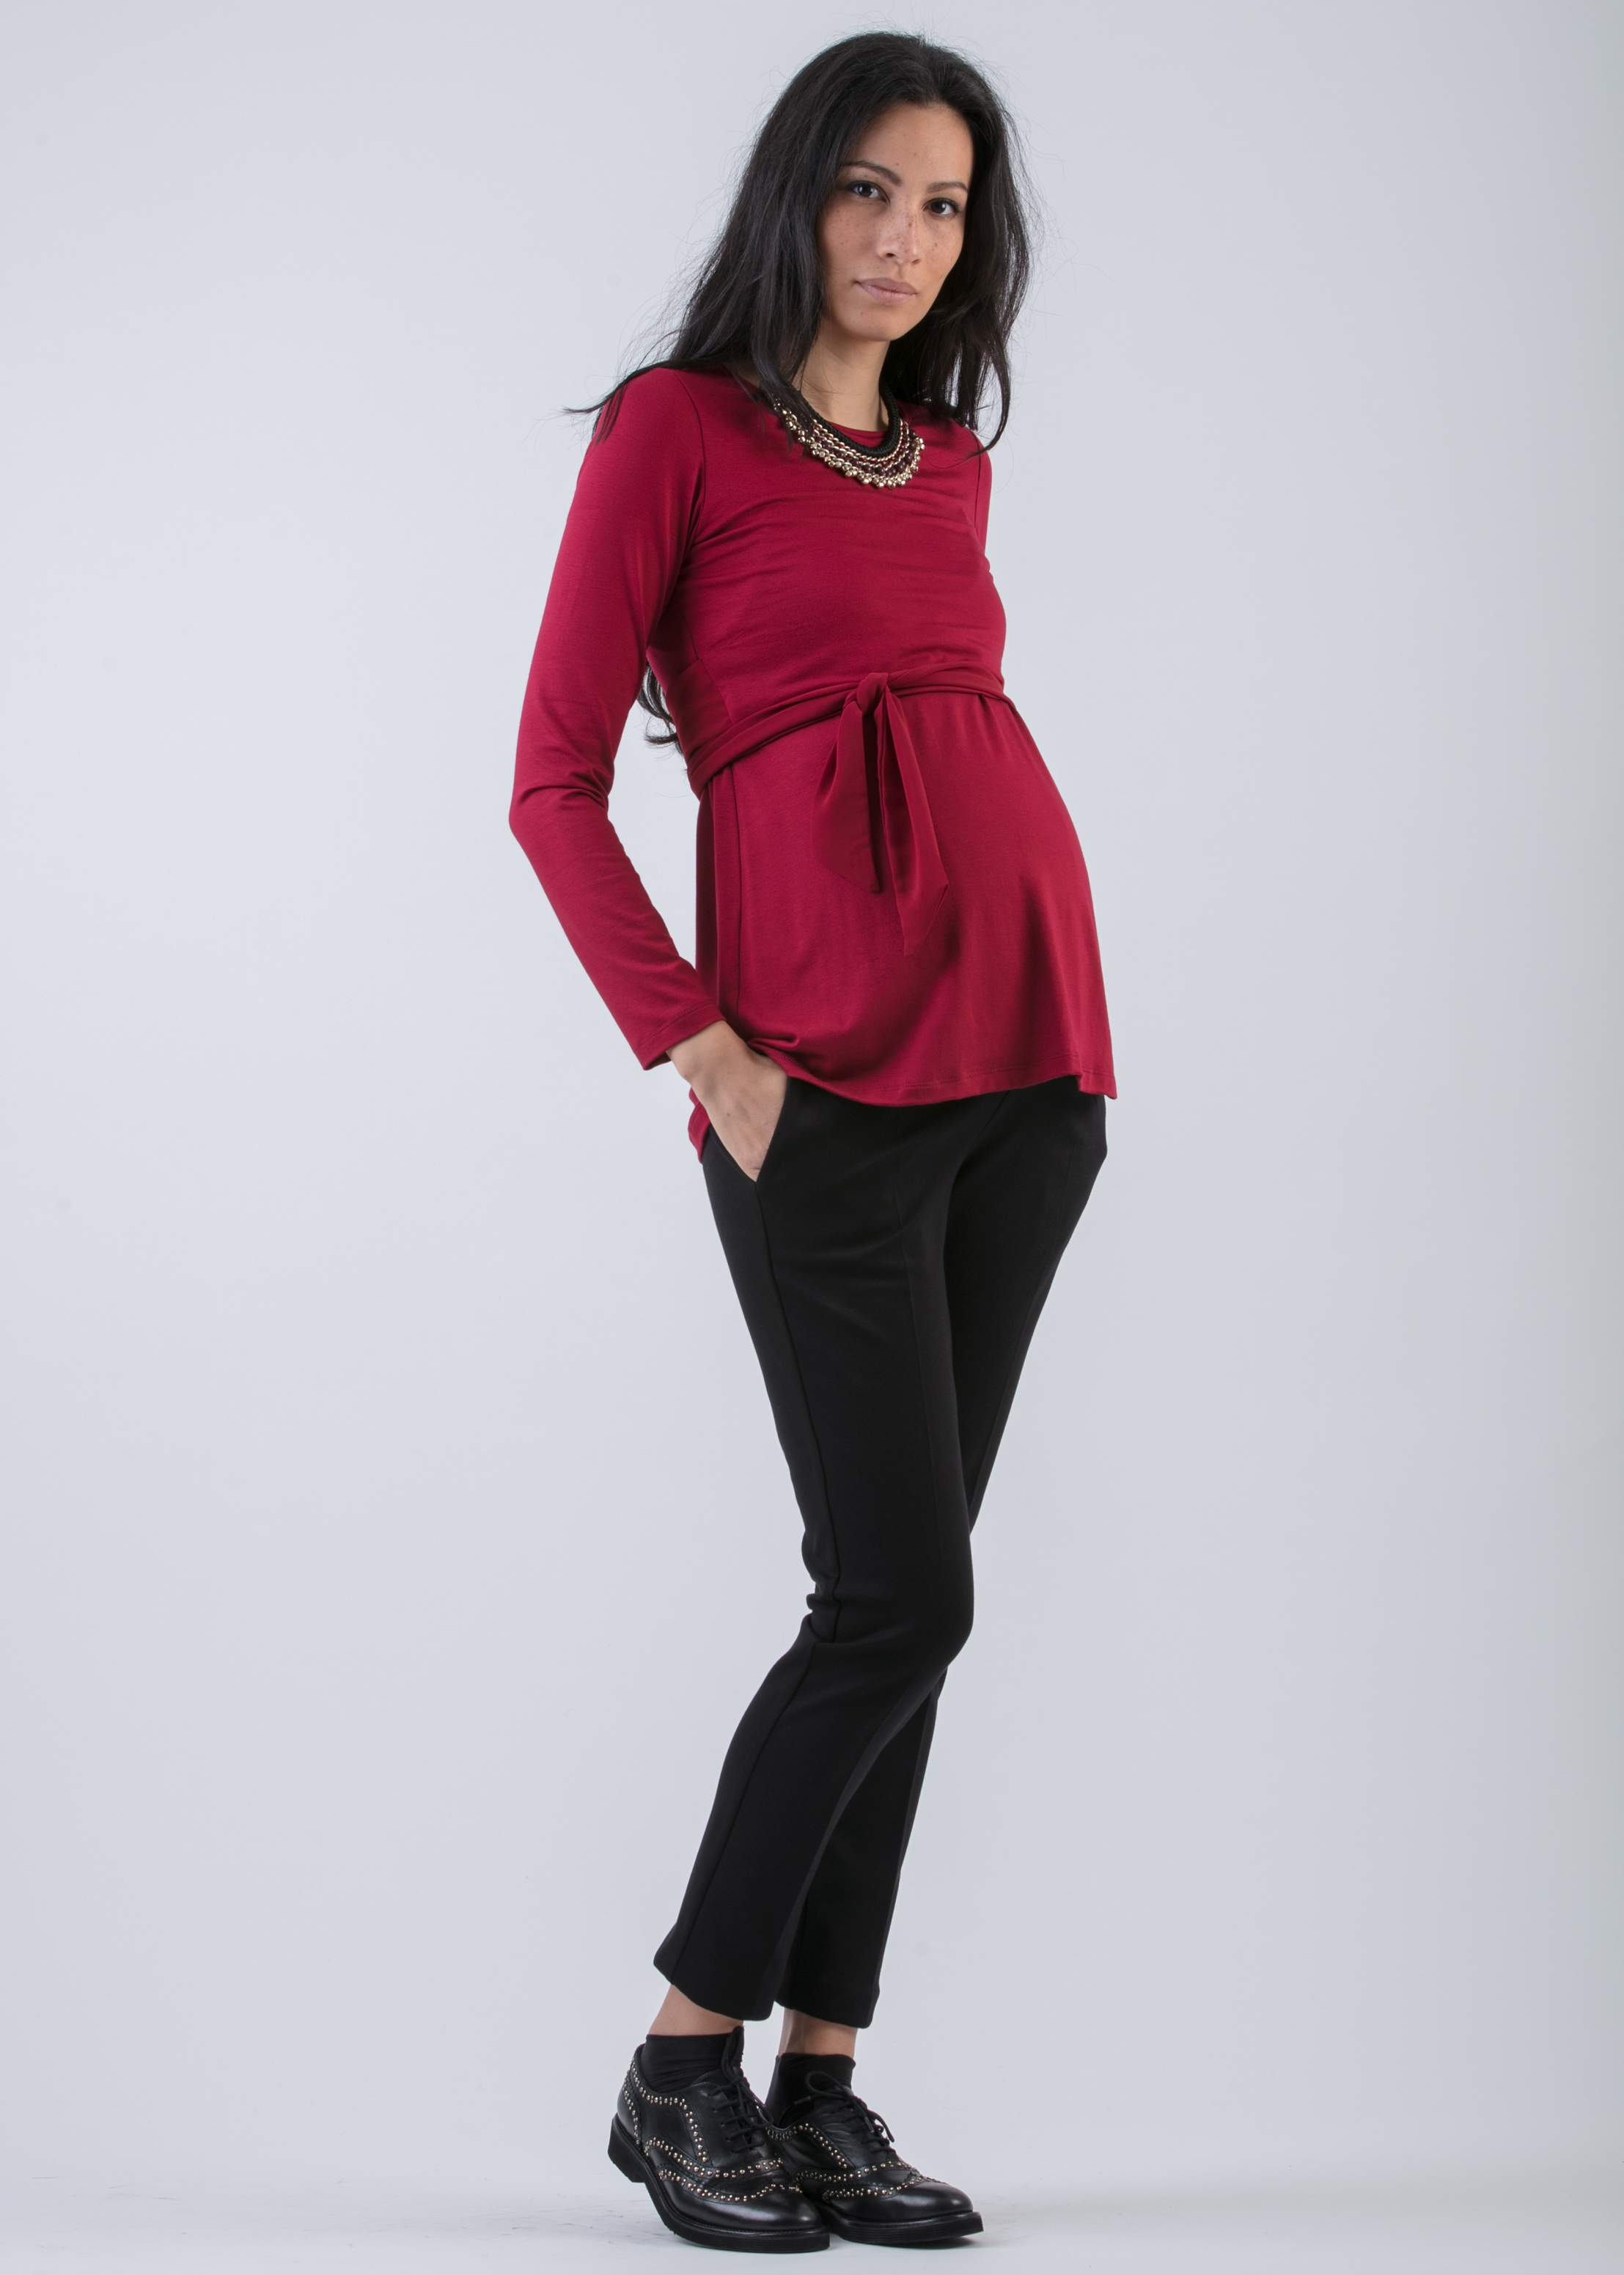 Anita Nursing Top with Long Sleeves and Chiffon Tie